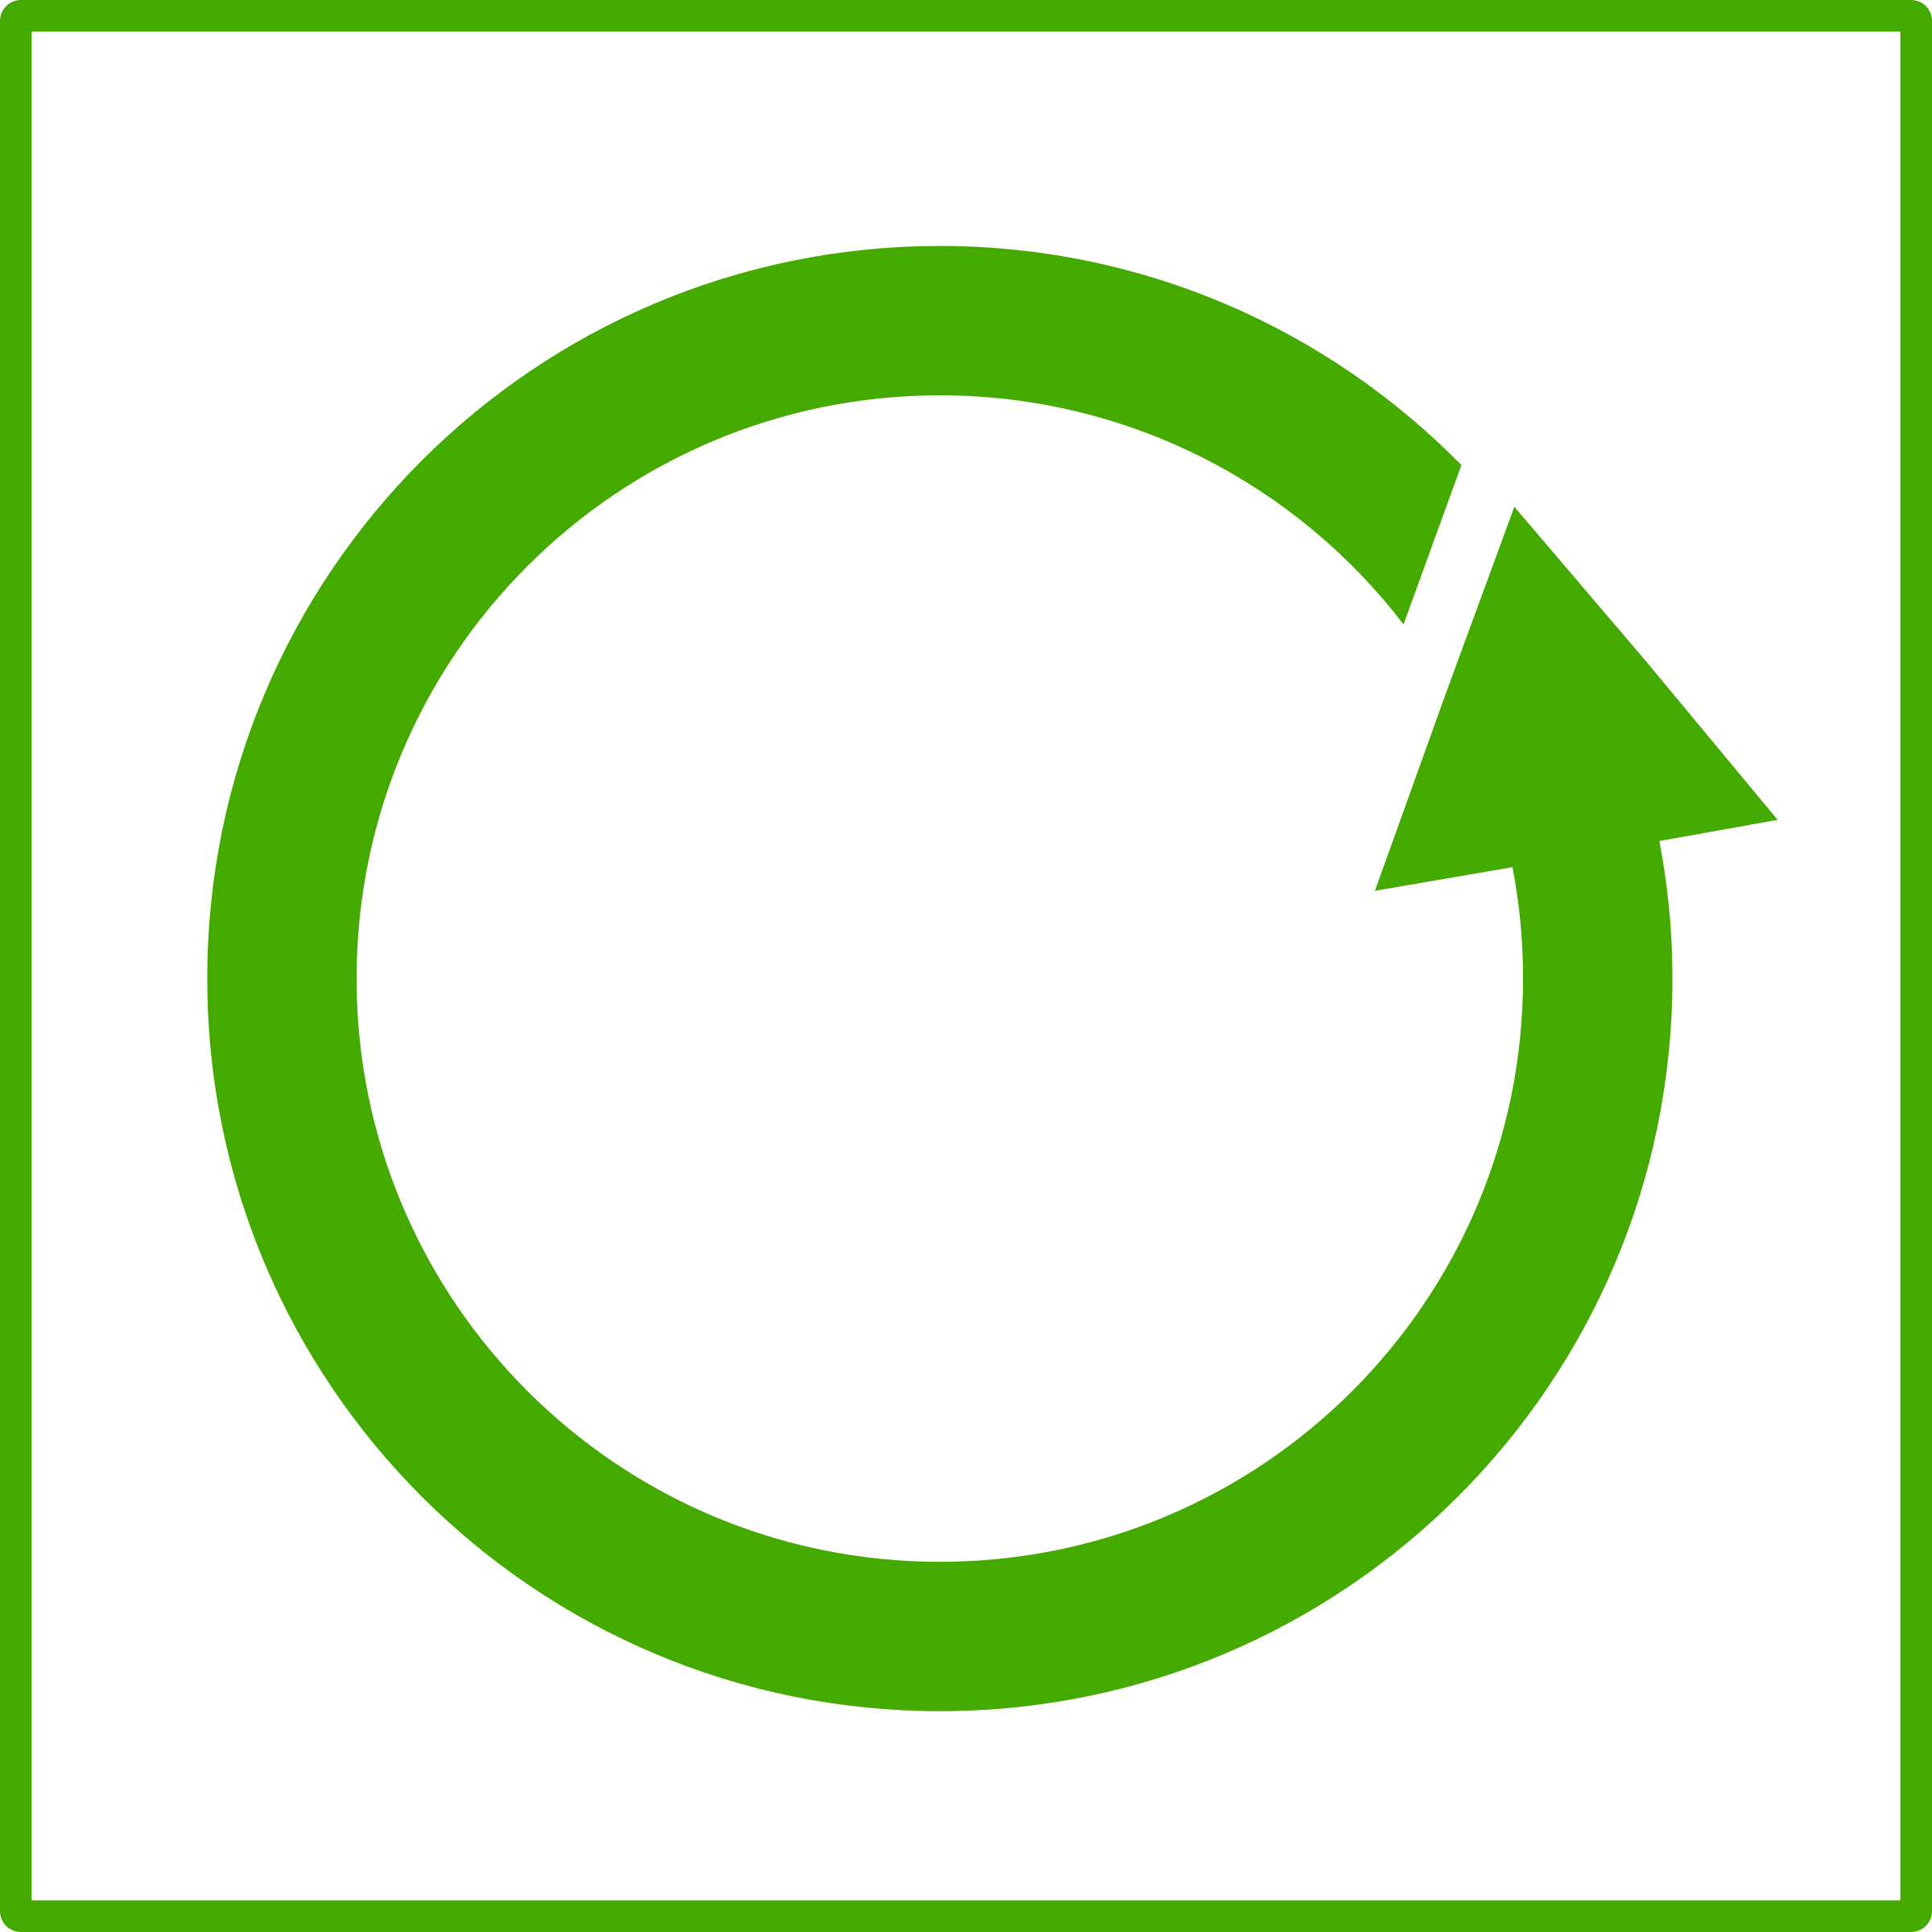 eco green recycle icon by dominiquechappard